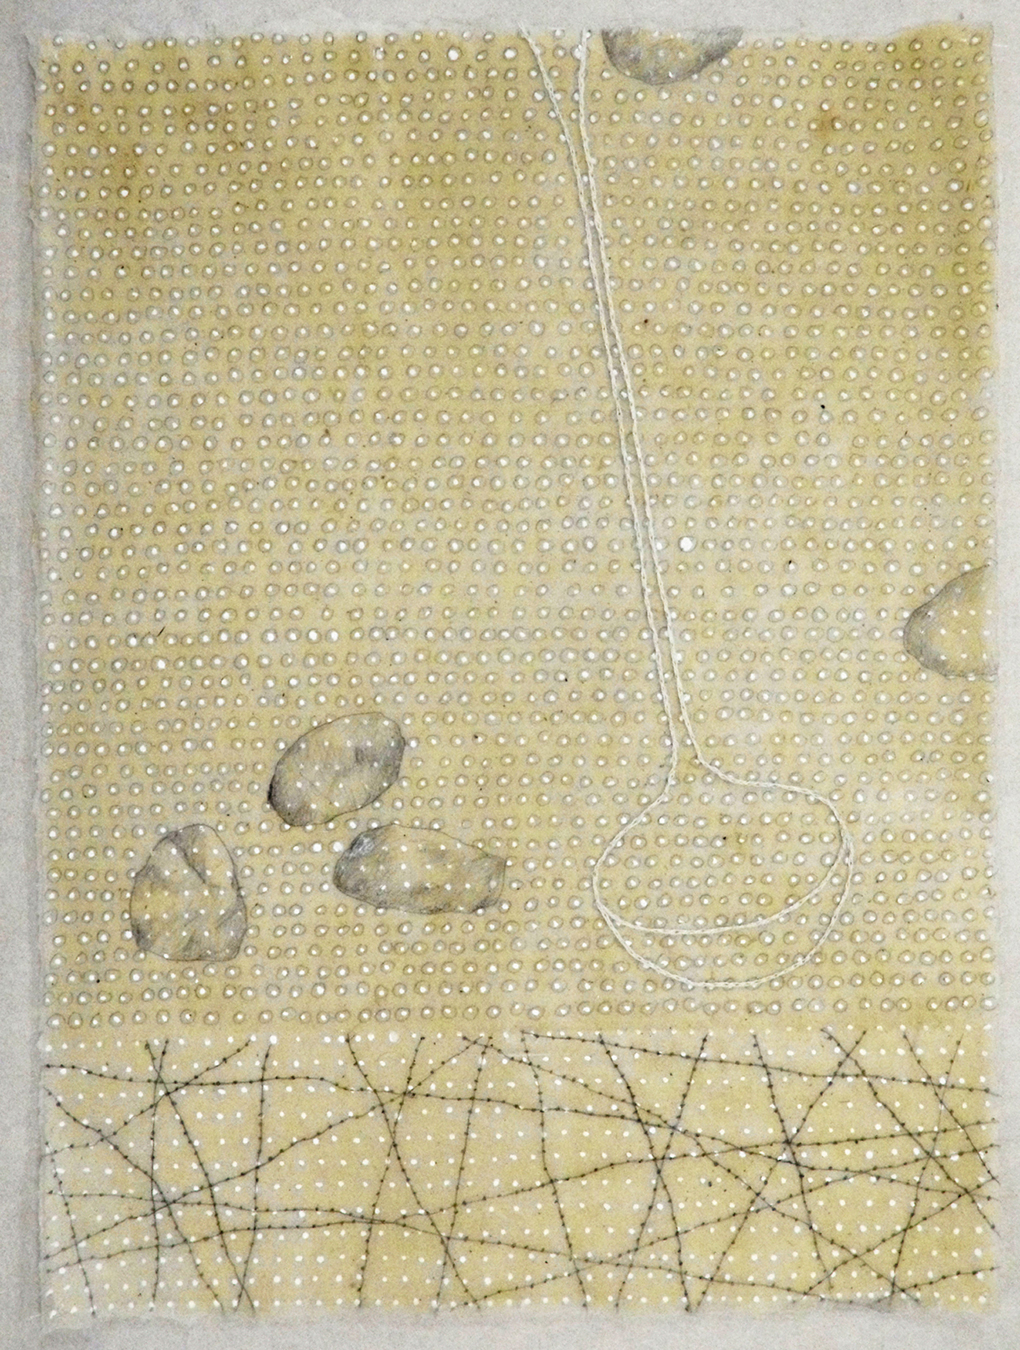 Notes From The Ancestors no.11 (graphite, ink, beeswax, embroidery on Japanese paper)